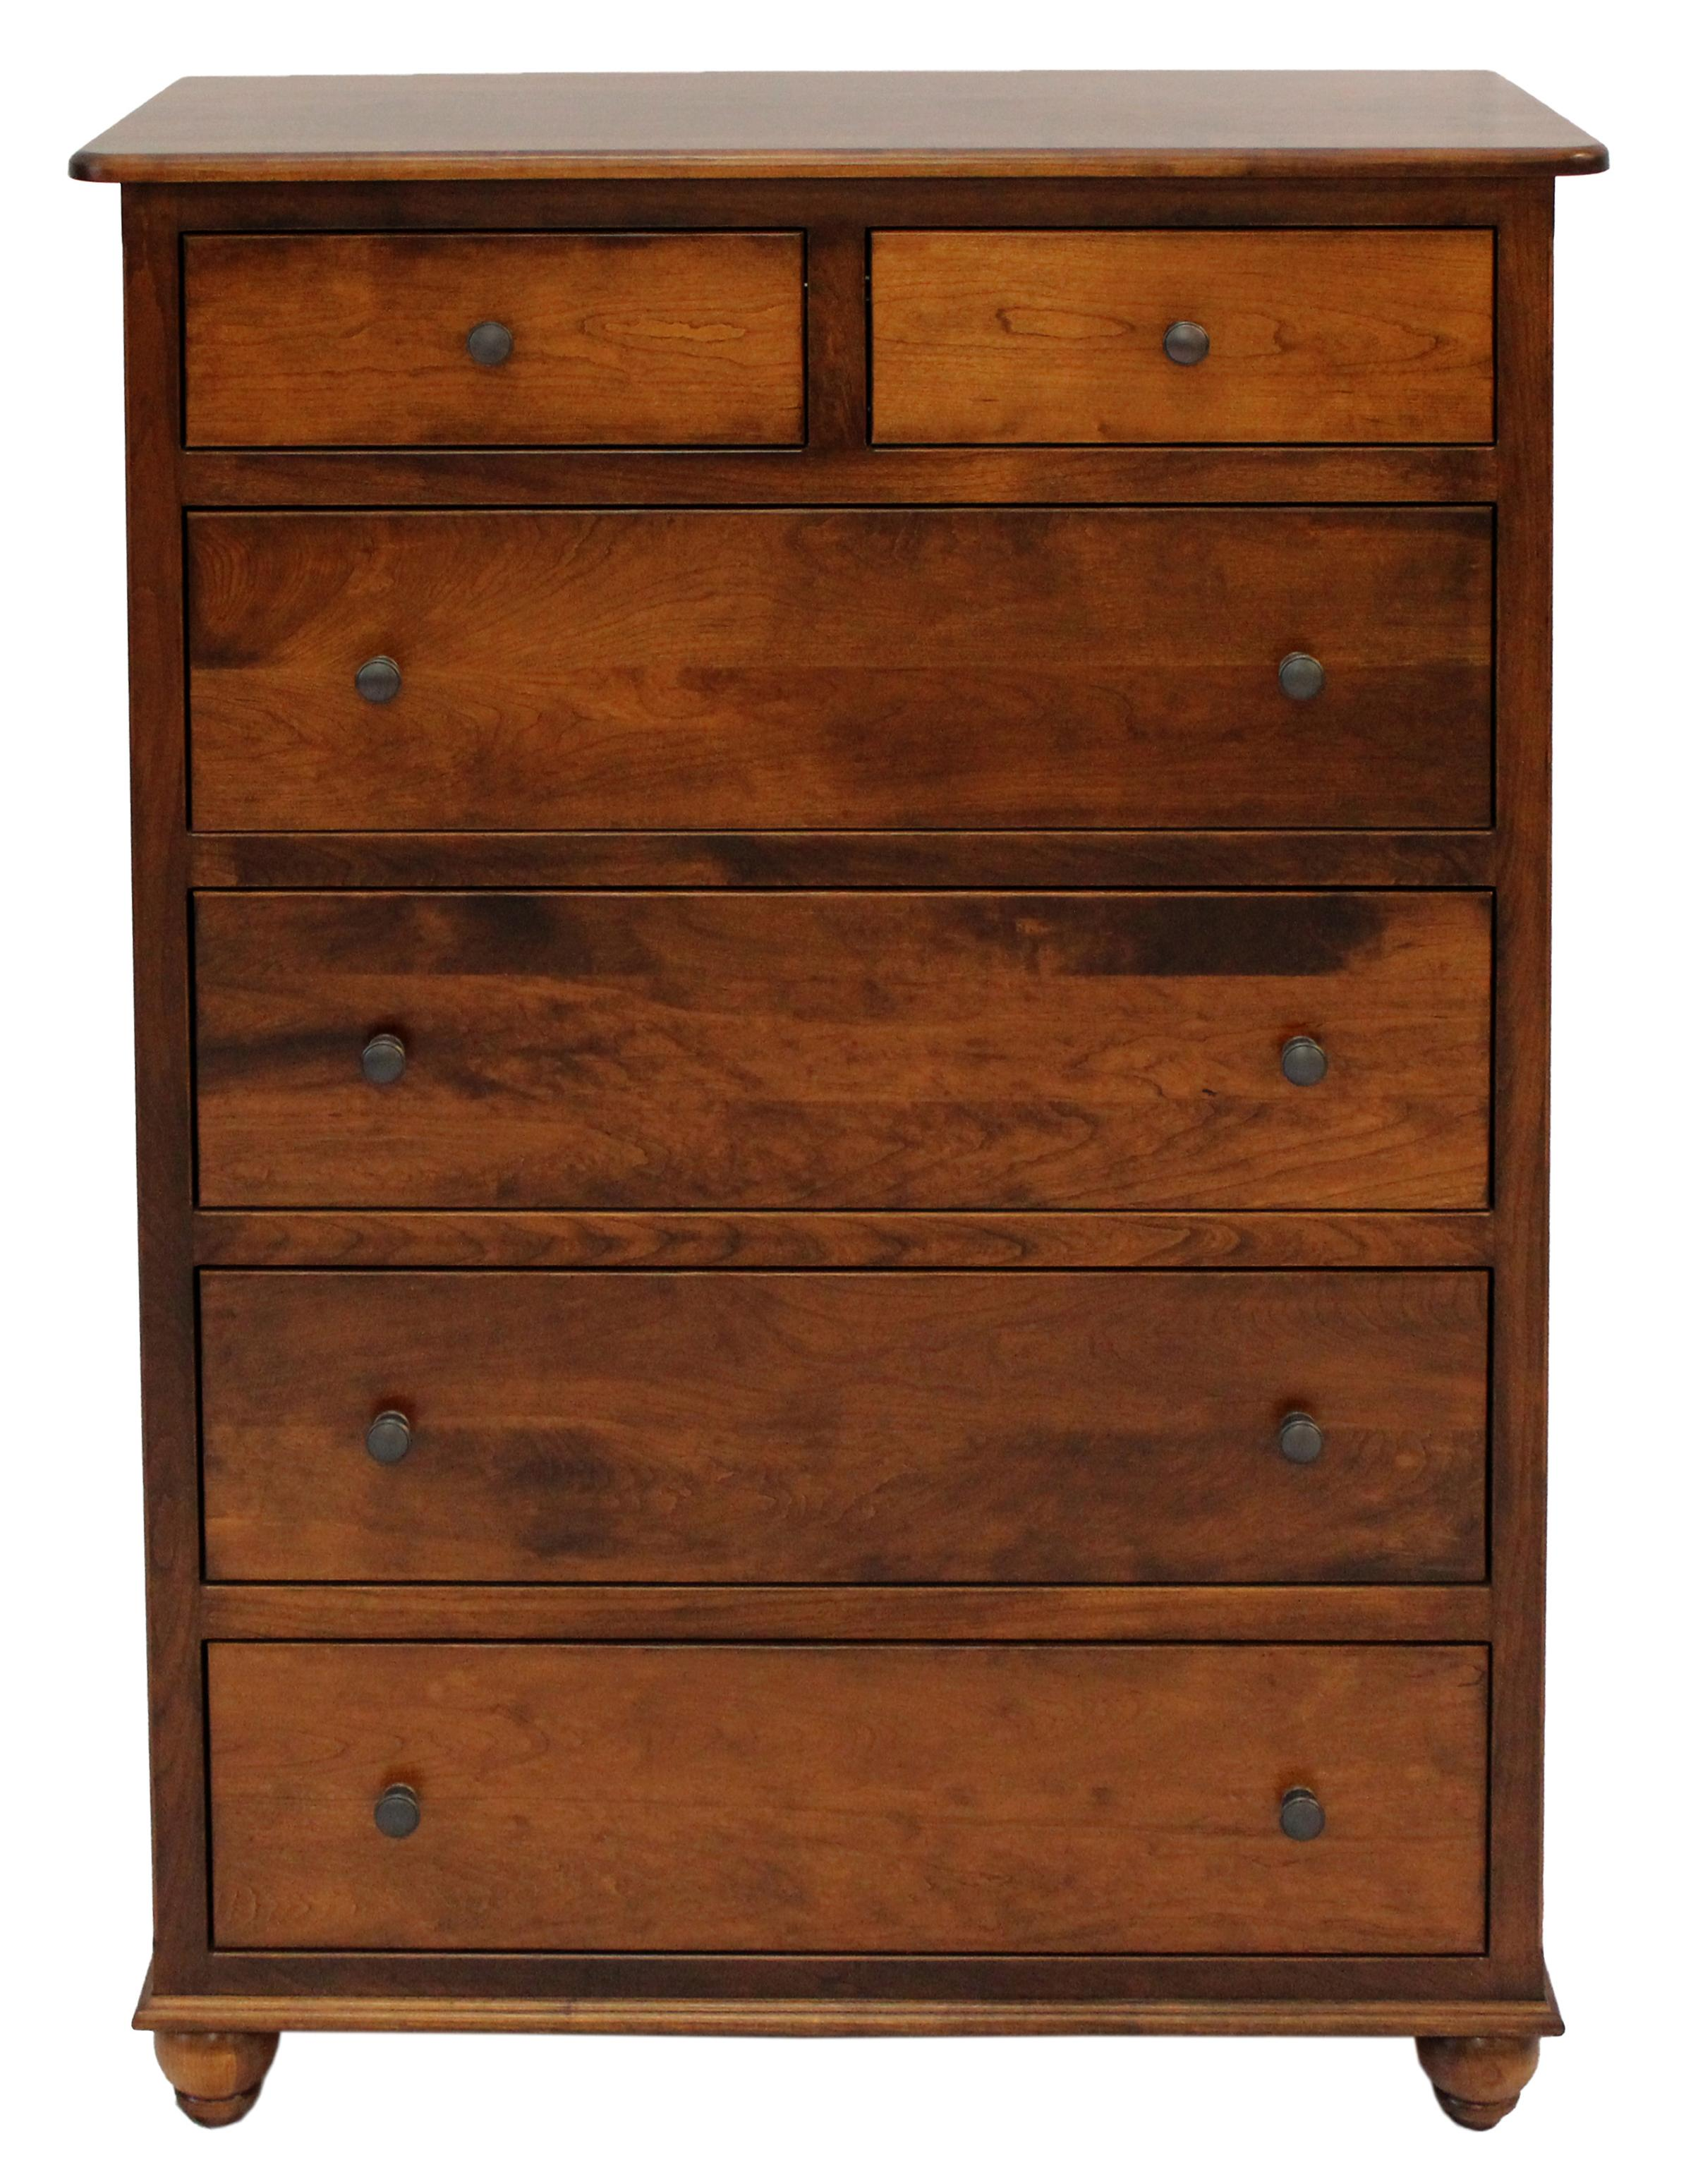 L.J. Gascho Furniture Covington Convington Chest - Item Number: 2151-56